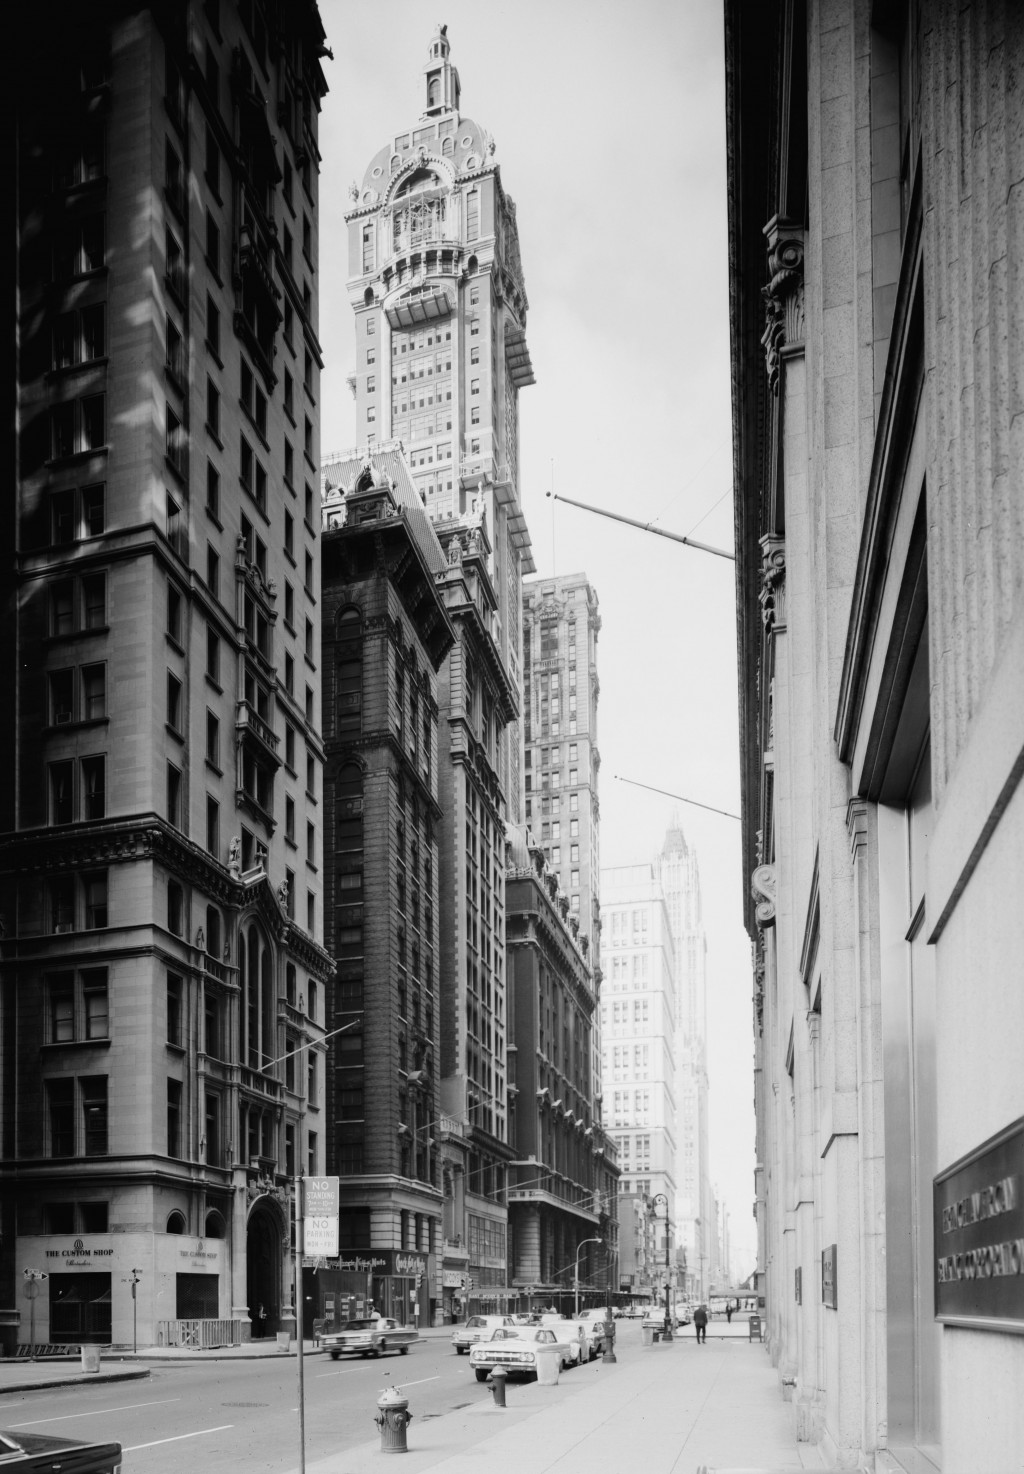 Demolition works begin on the Singer Building (center). July 1967.